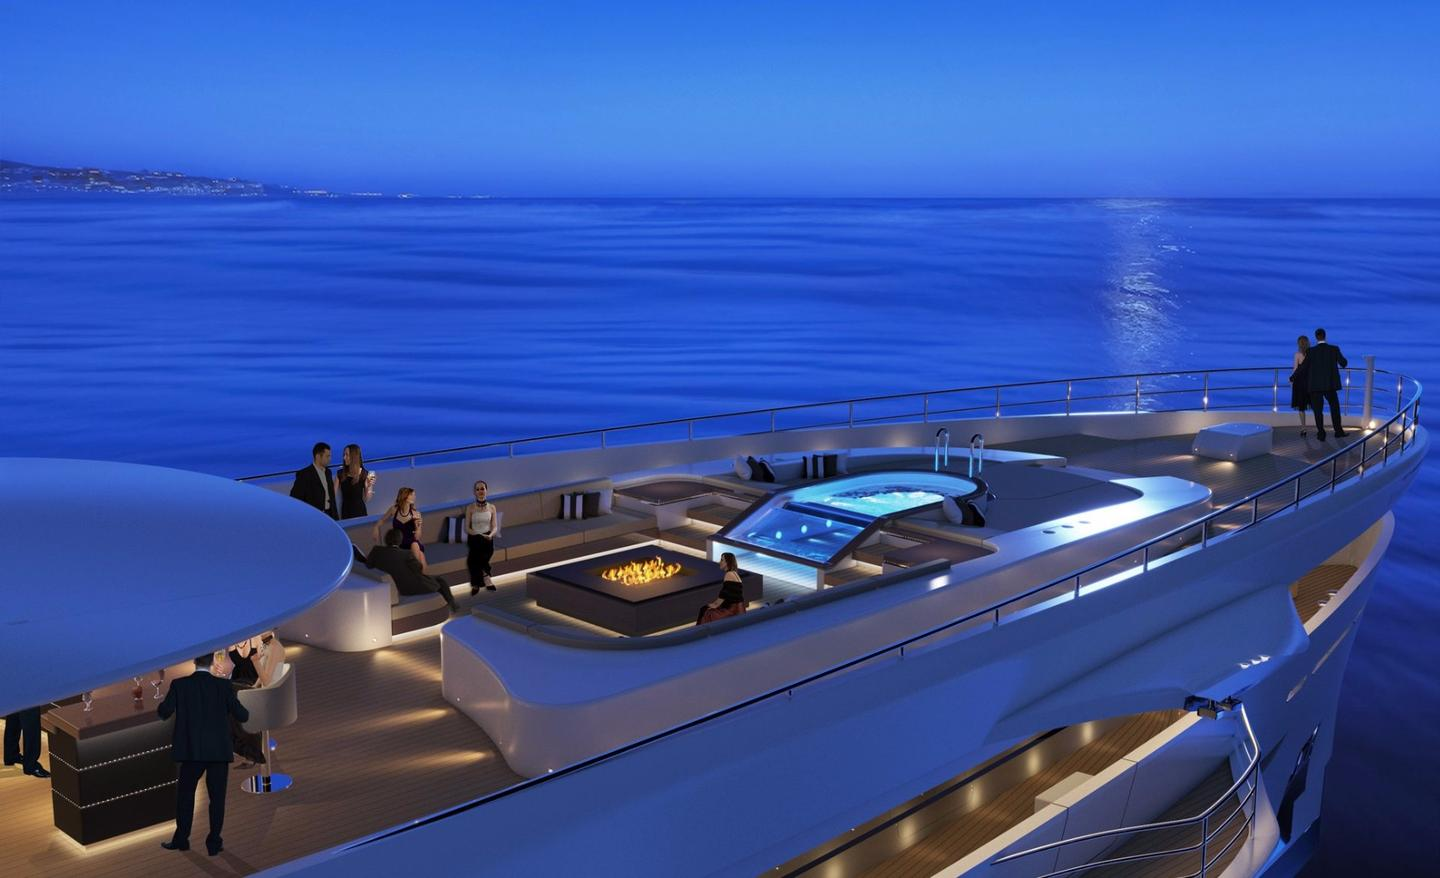 There's little chance of overcrowding on Project Maximus as it carries a maximum 12 guests